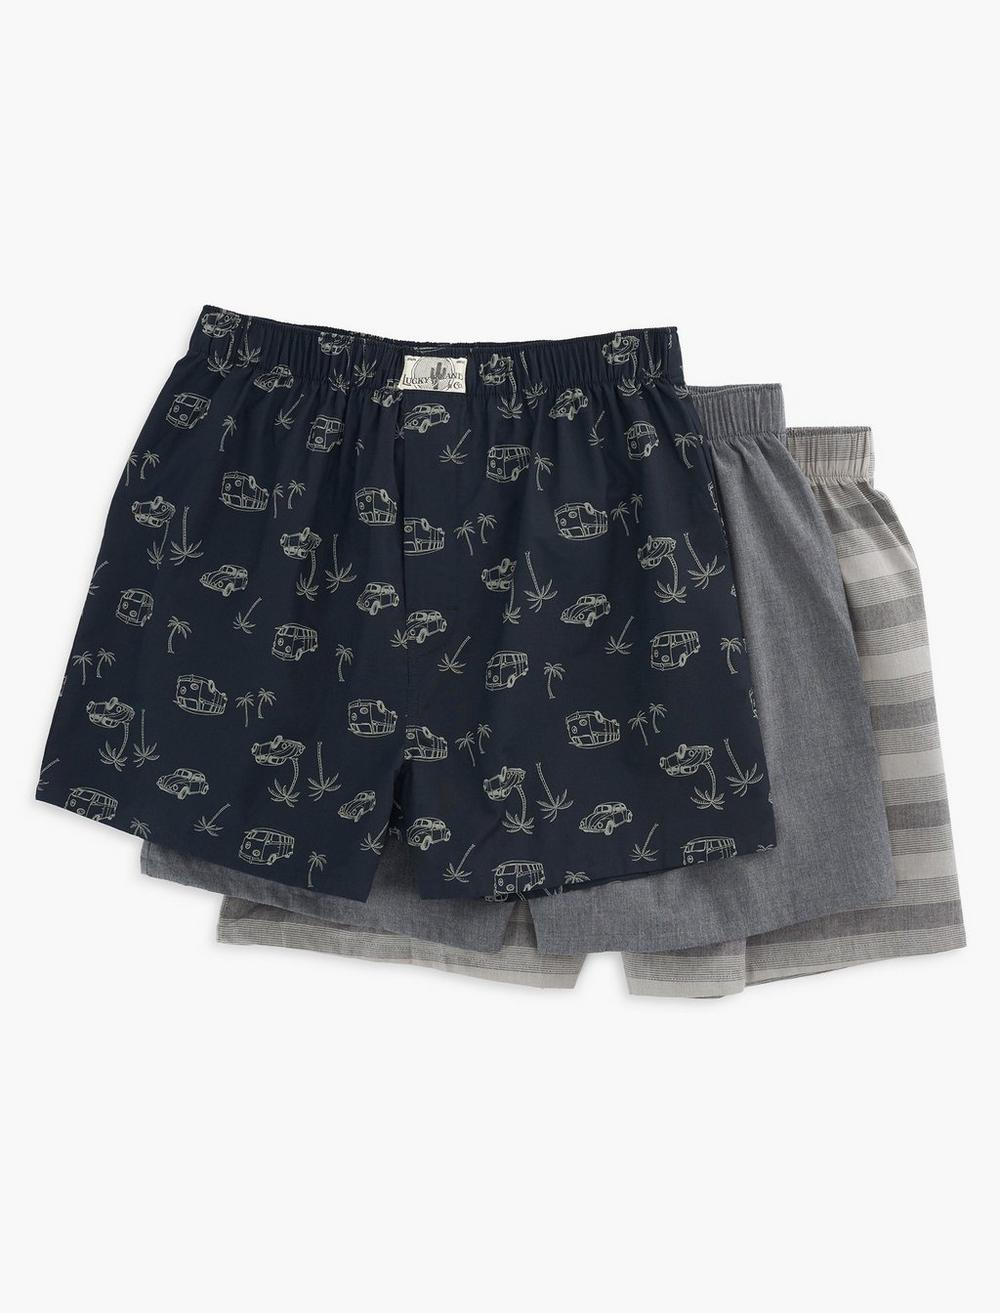 TROPICAL BUX 3 PACK WOVEN BOXERS, image 1